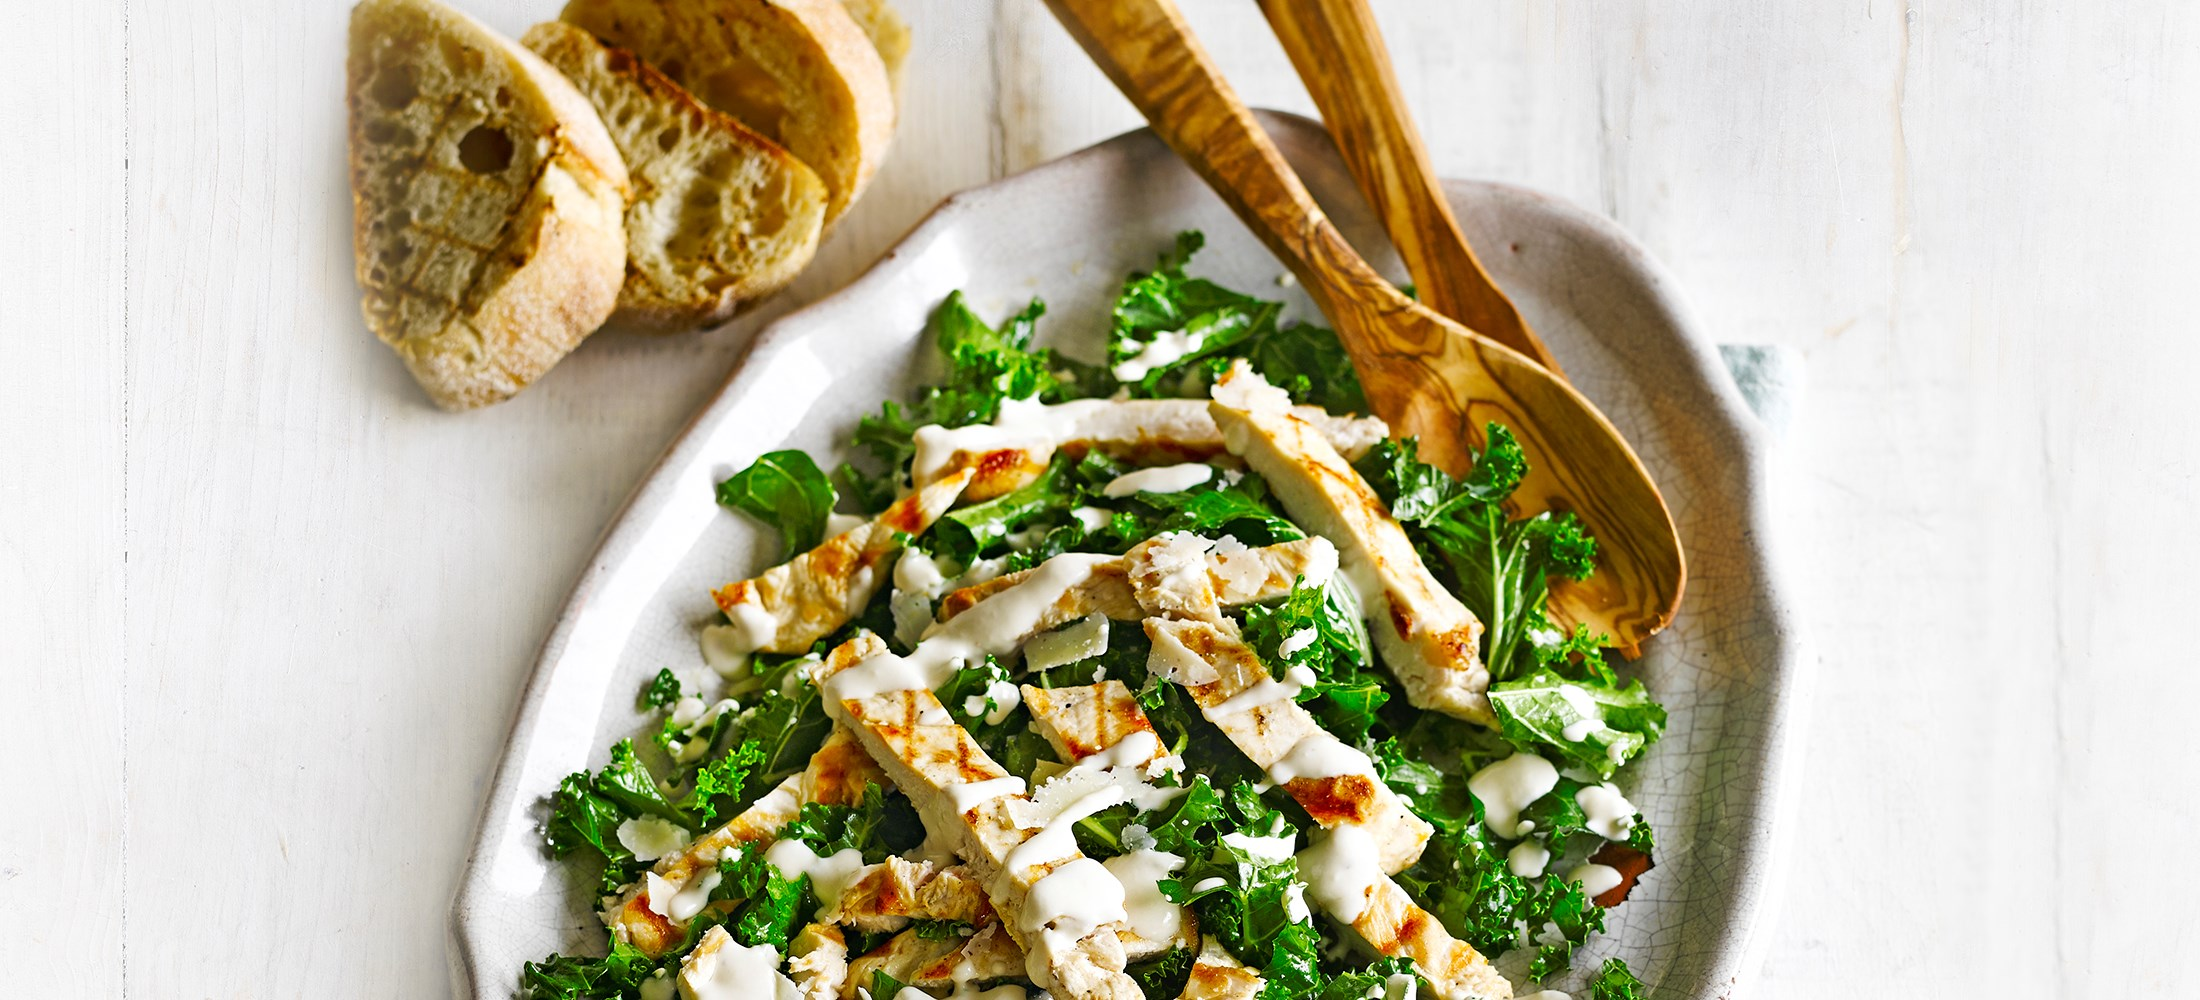 Kale Chicken Caesar Salad served on a pale white oval plate